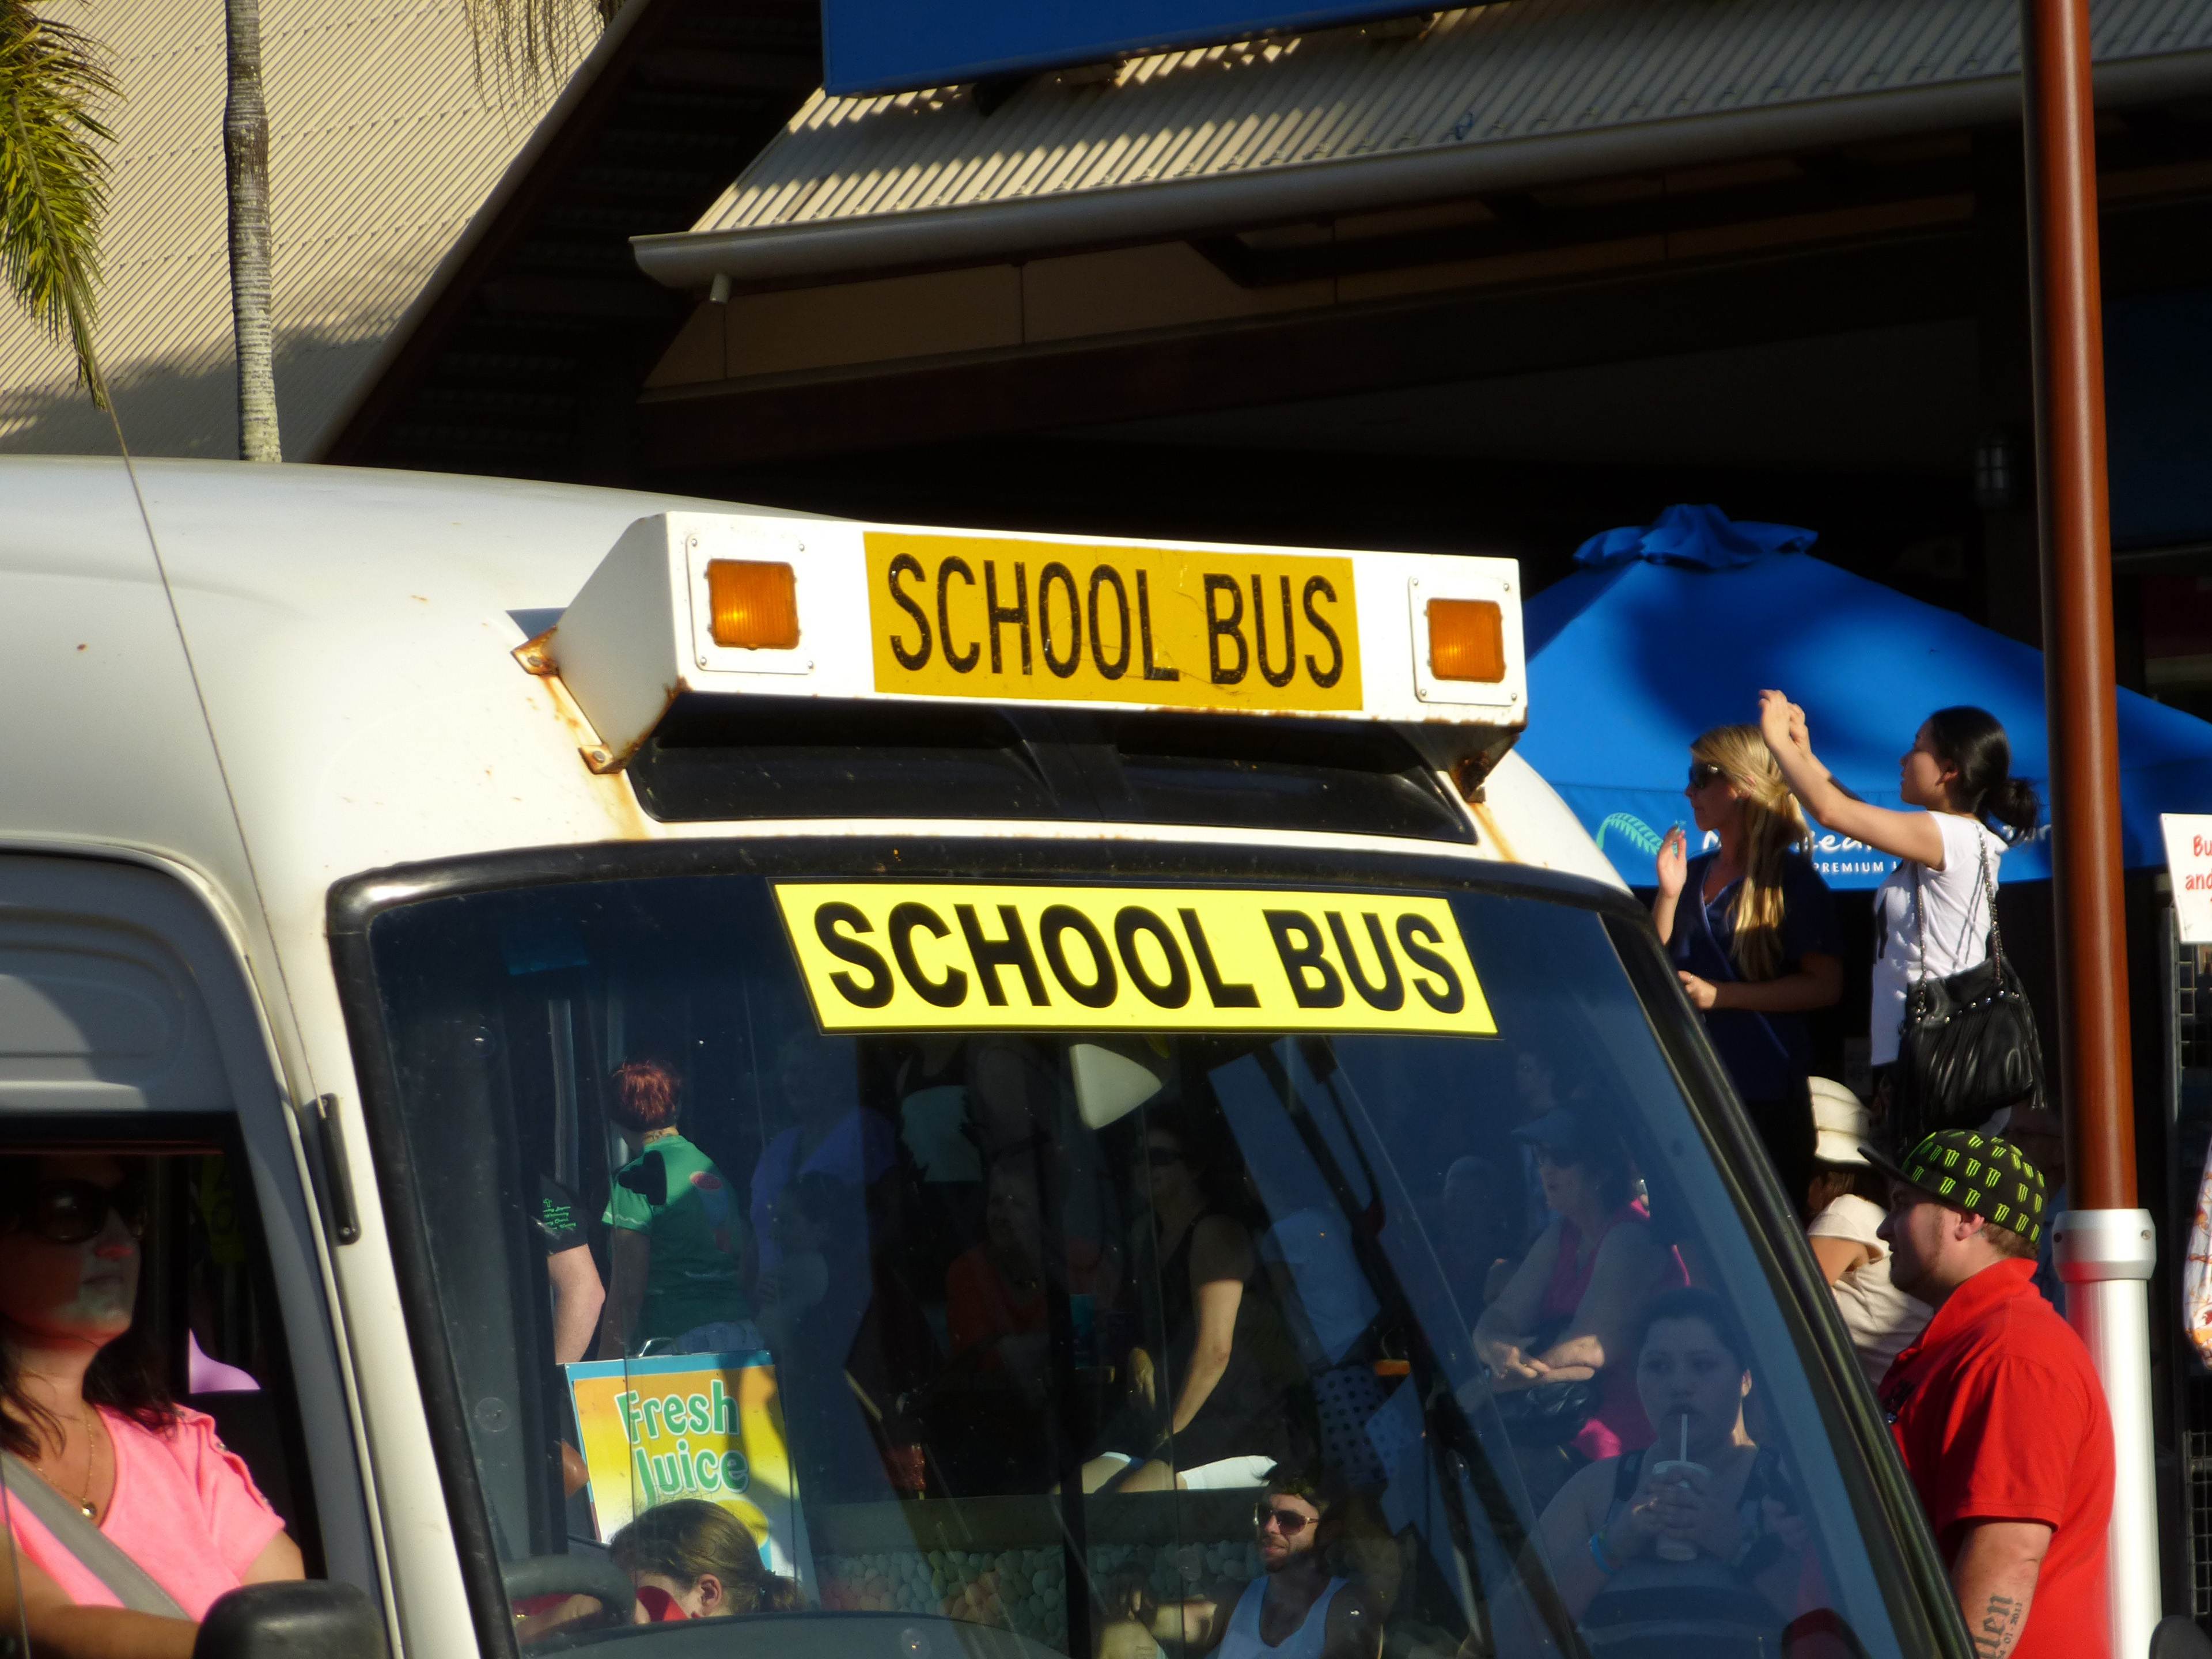 Front windscreen and yellow sign on a school bus with students visible in the background and in the bus